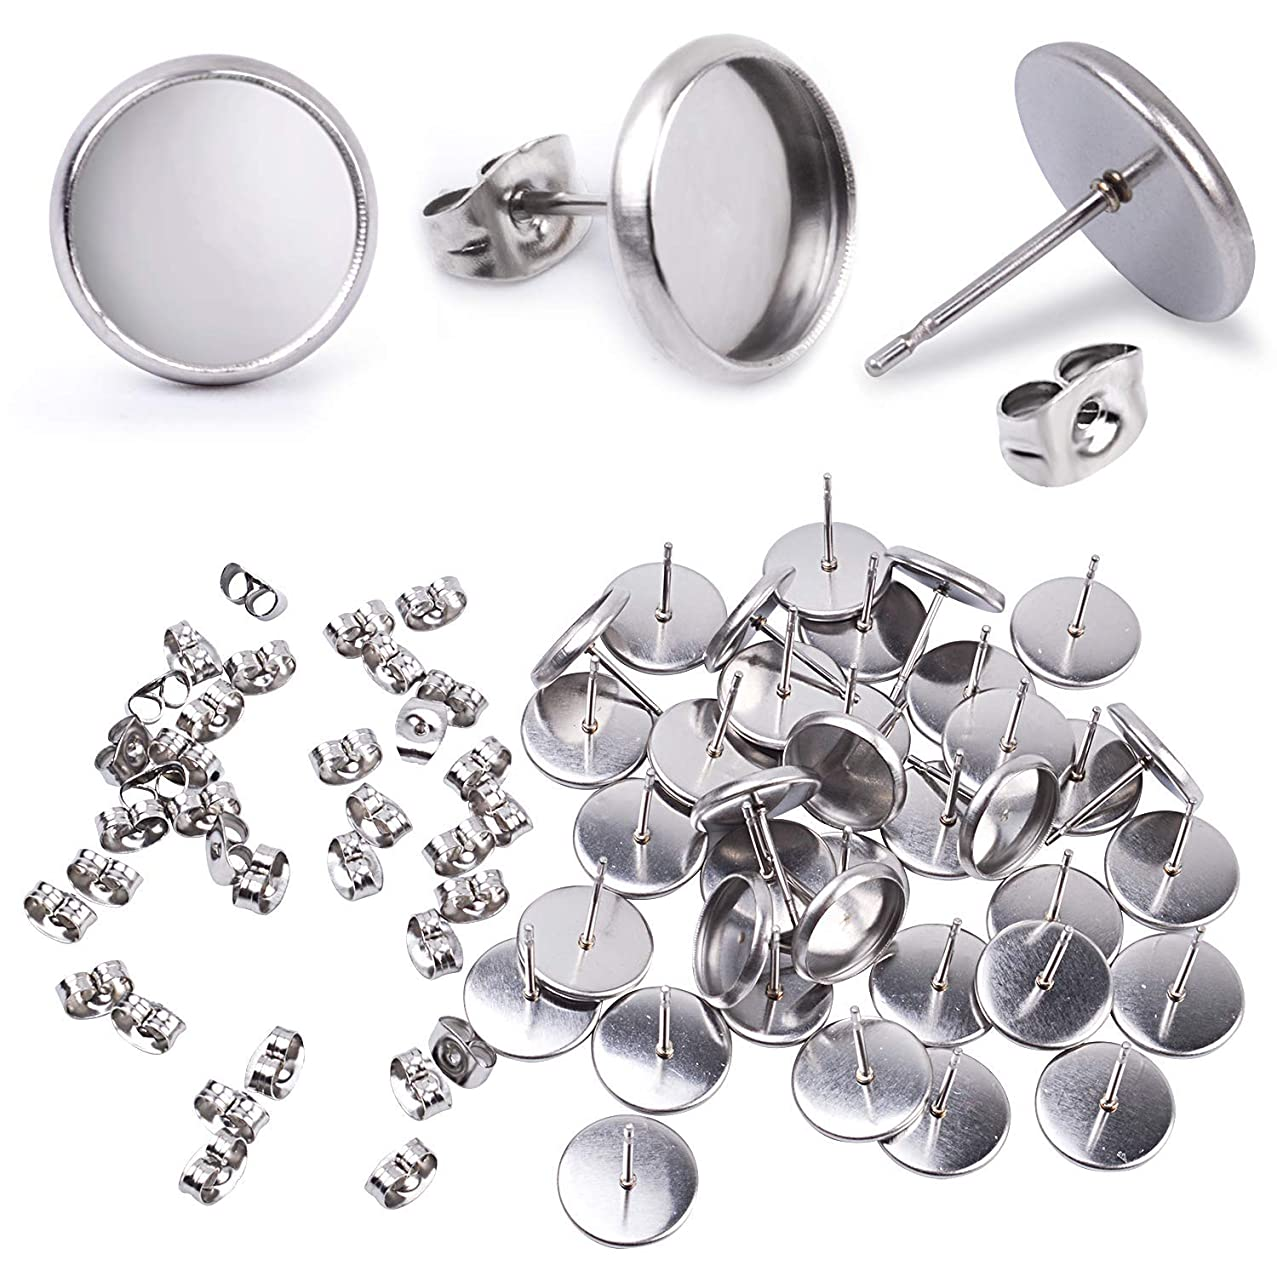 Jdesun 40 Pieces Stainless Steel Stud Earring Cabochon Setting Post Cup for 10mm and 40 Pieces Earring Safety Backs